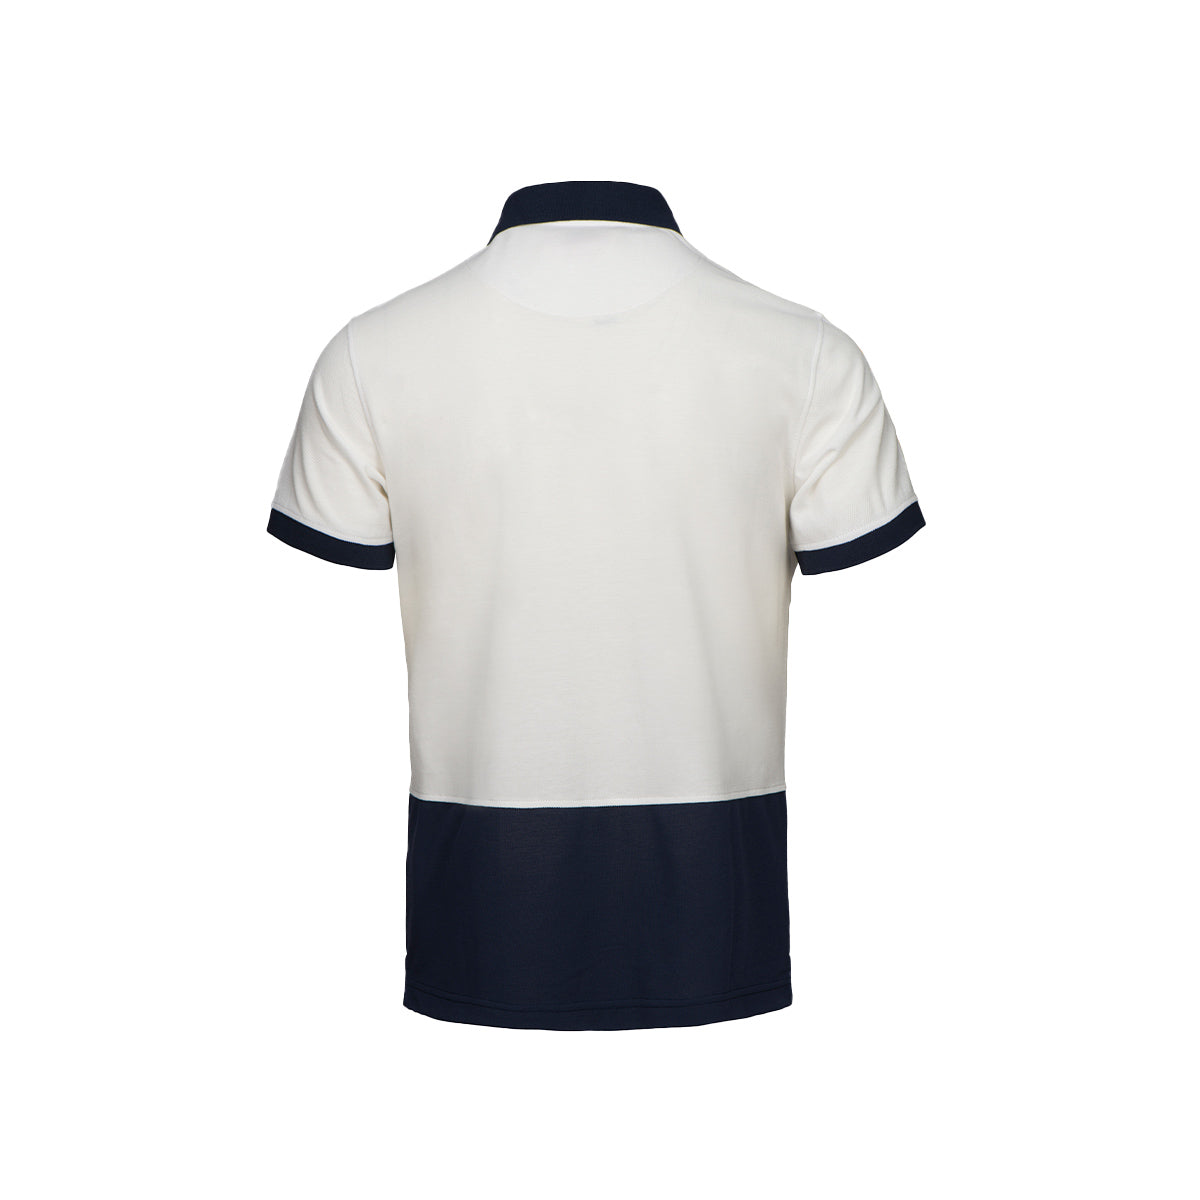 Forno Logo Hybrid Hydrophobic Pique Polo - background::white,variant::navy